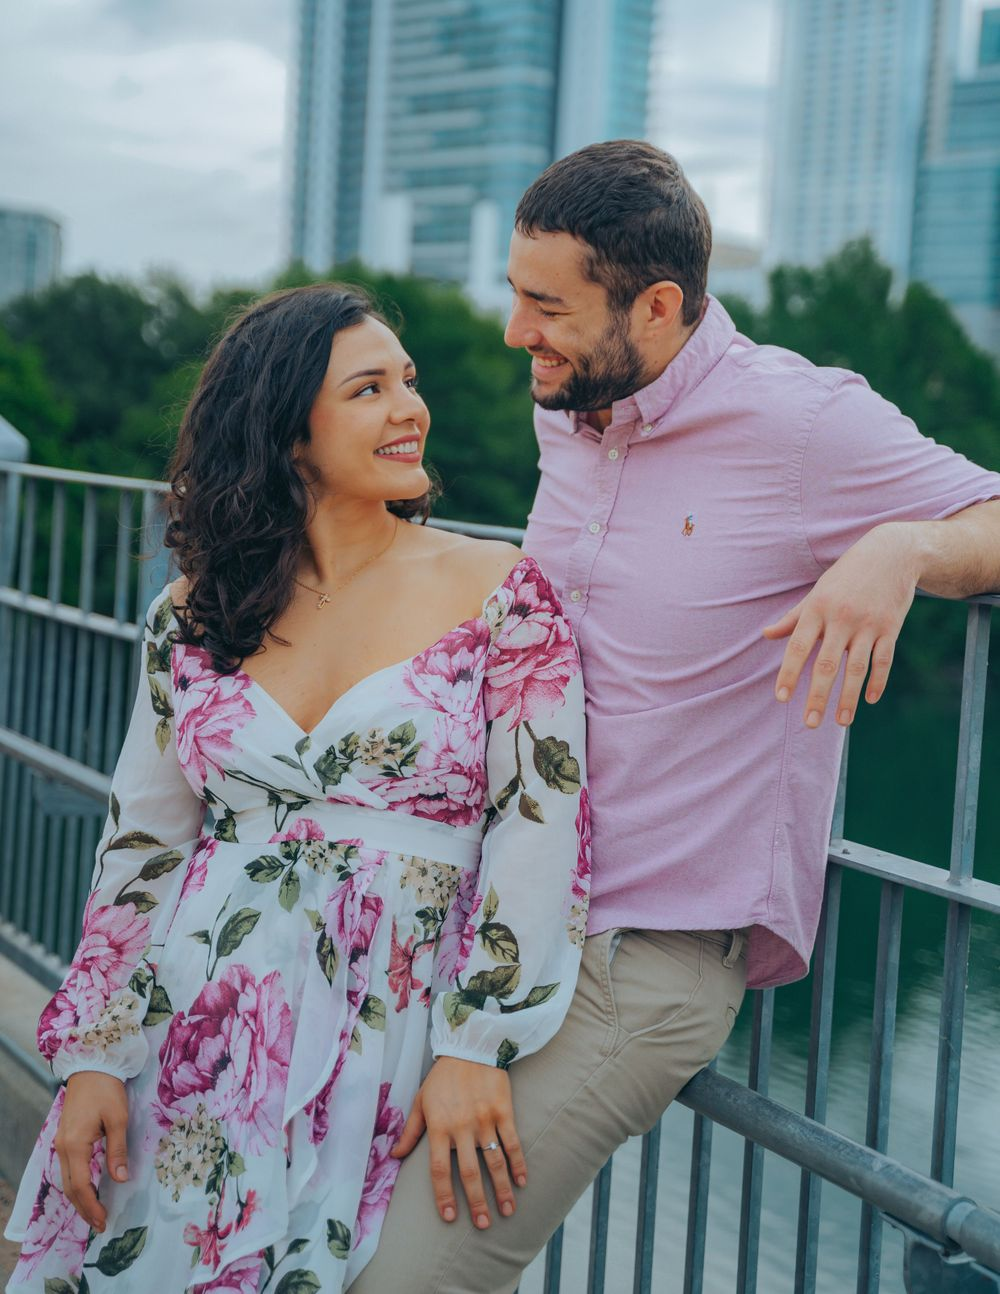 Jessica & Aldo Austin Engagement at Pfluger Pedestrian Bridge romantic gaze